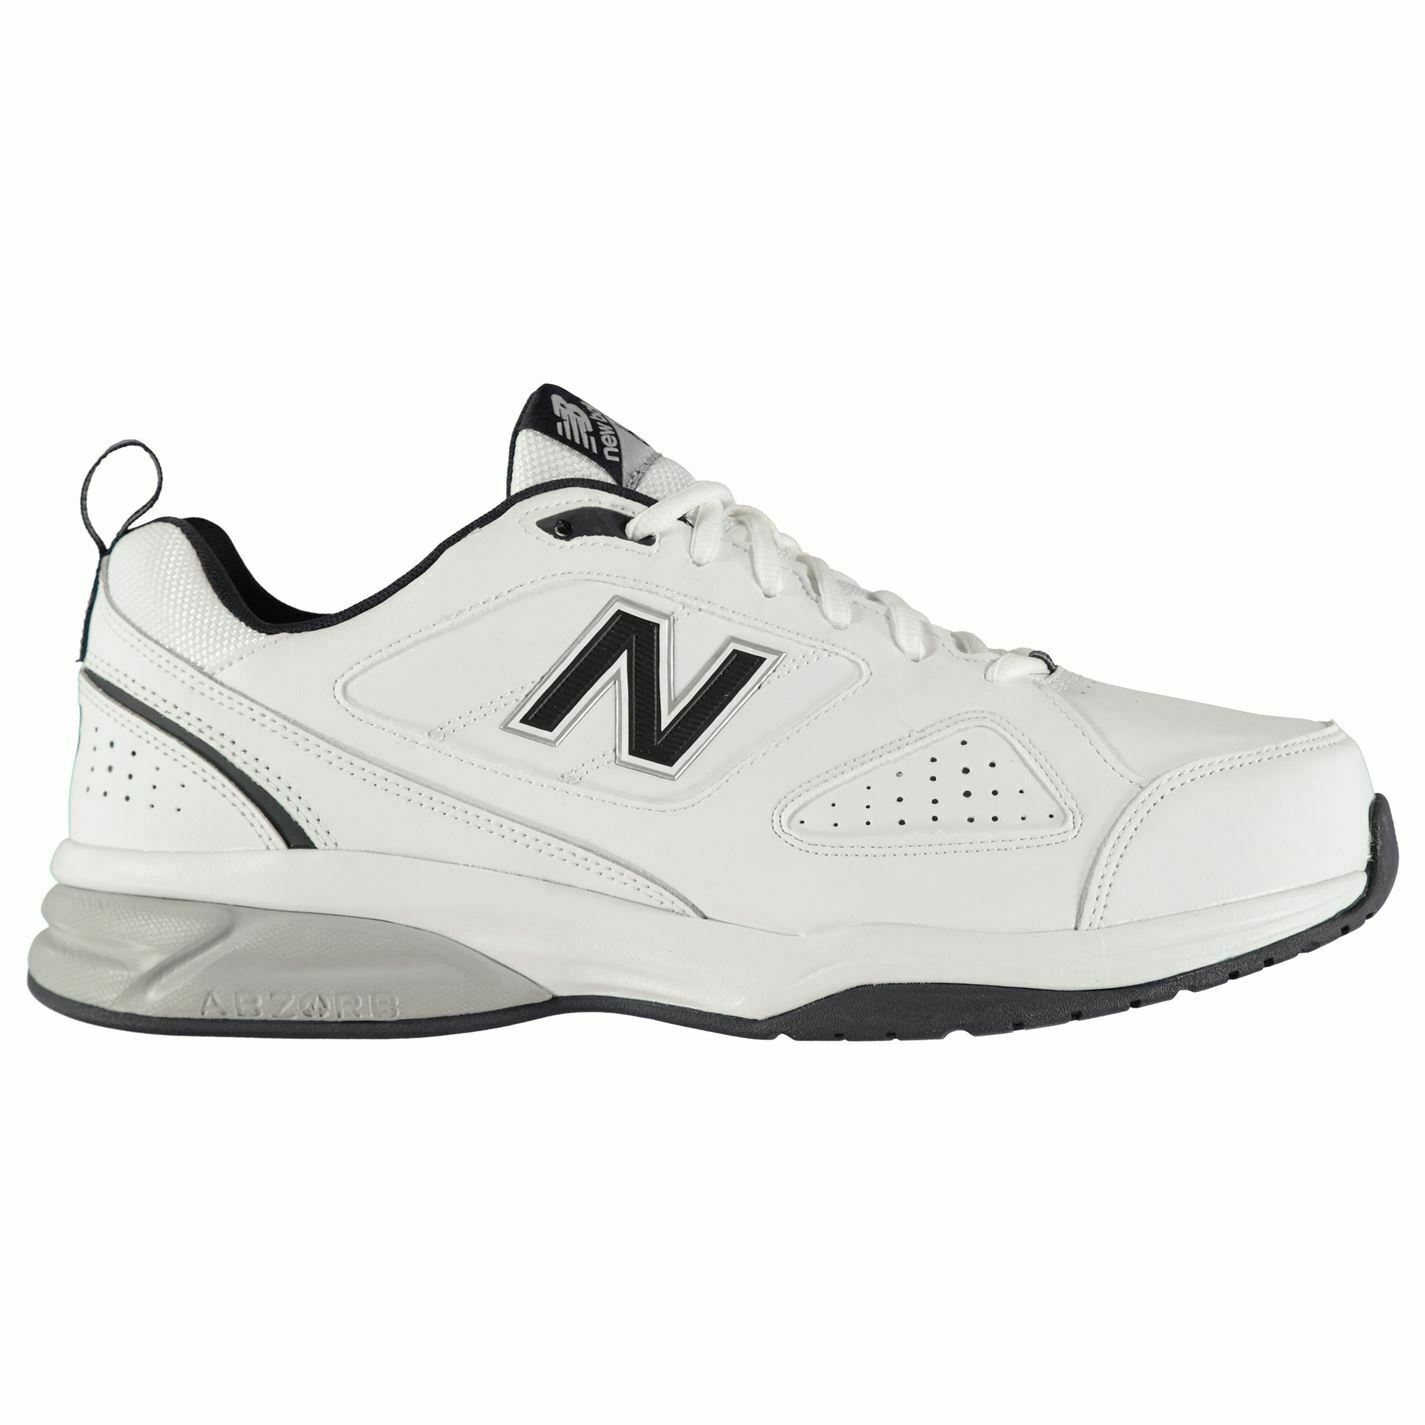 New Balance Mens 624X4 Indoor Trainers Sneakers Sports shoes Athletic  Footwear  are doing discount activities